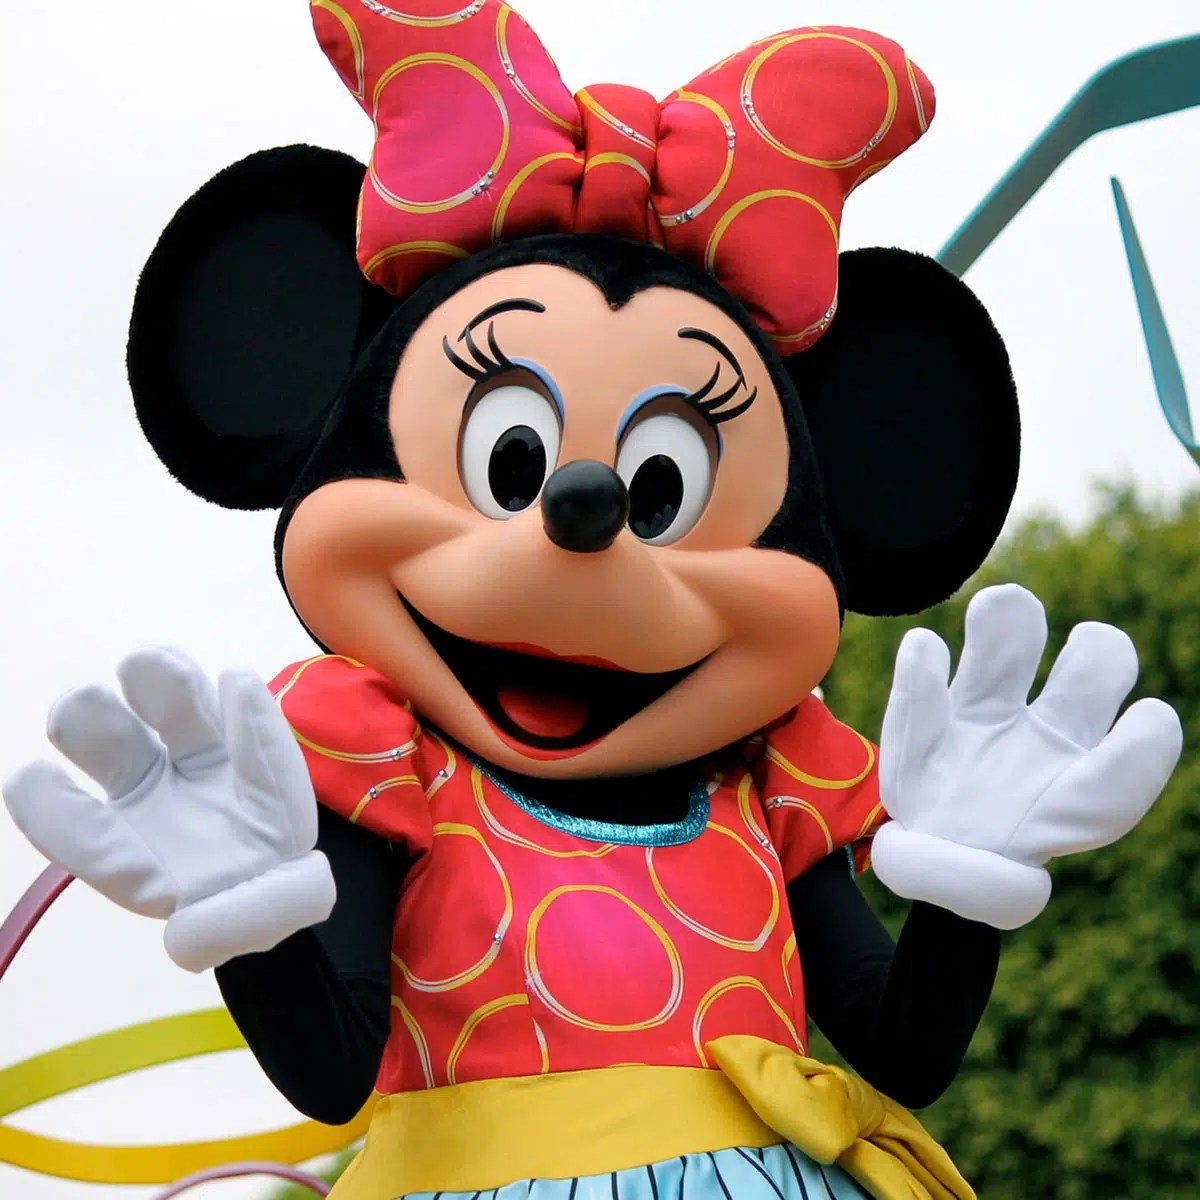 Minnie Mouse S Birthday November 18 2021 National Today